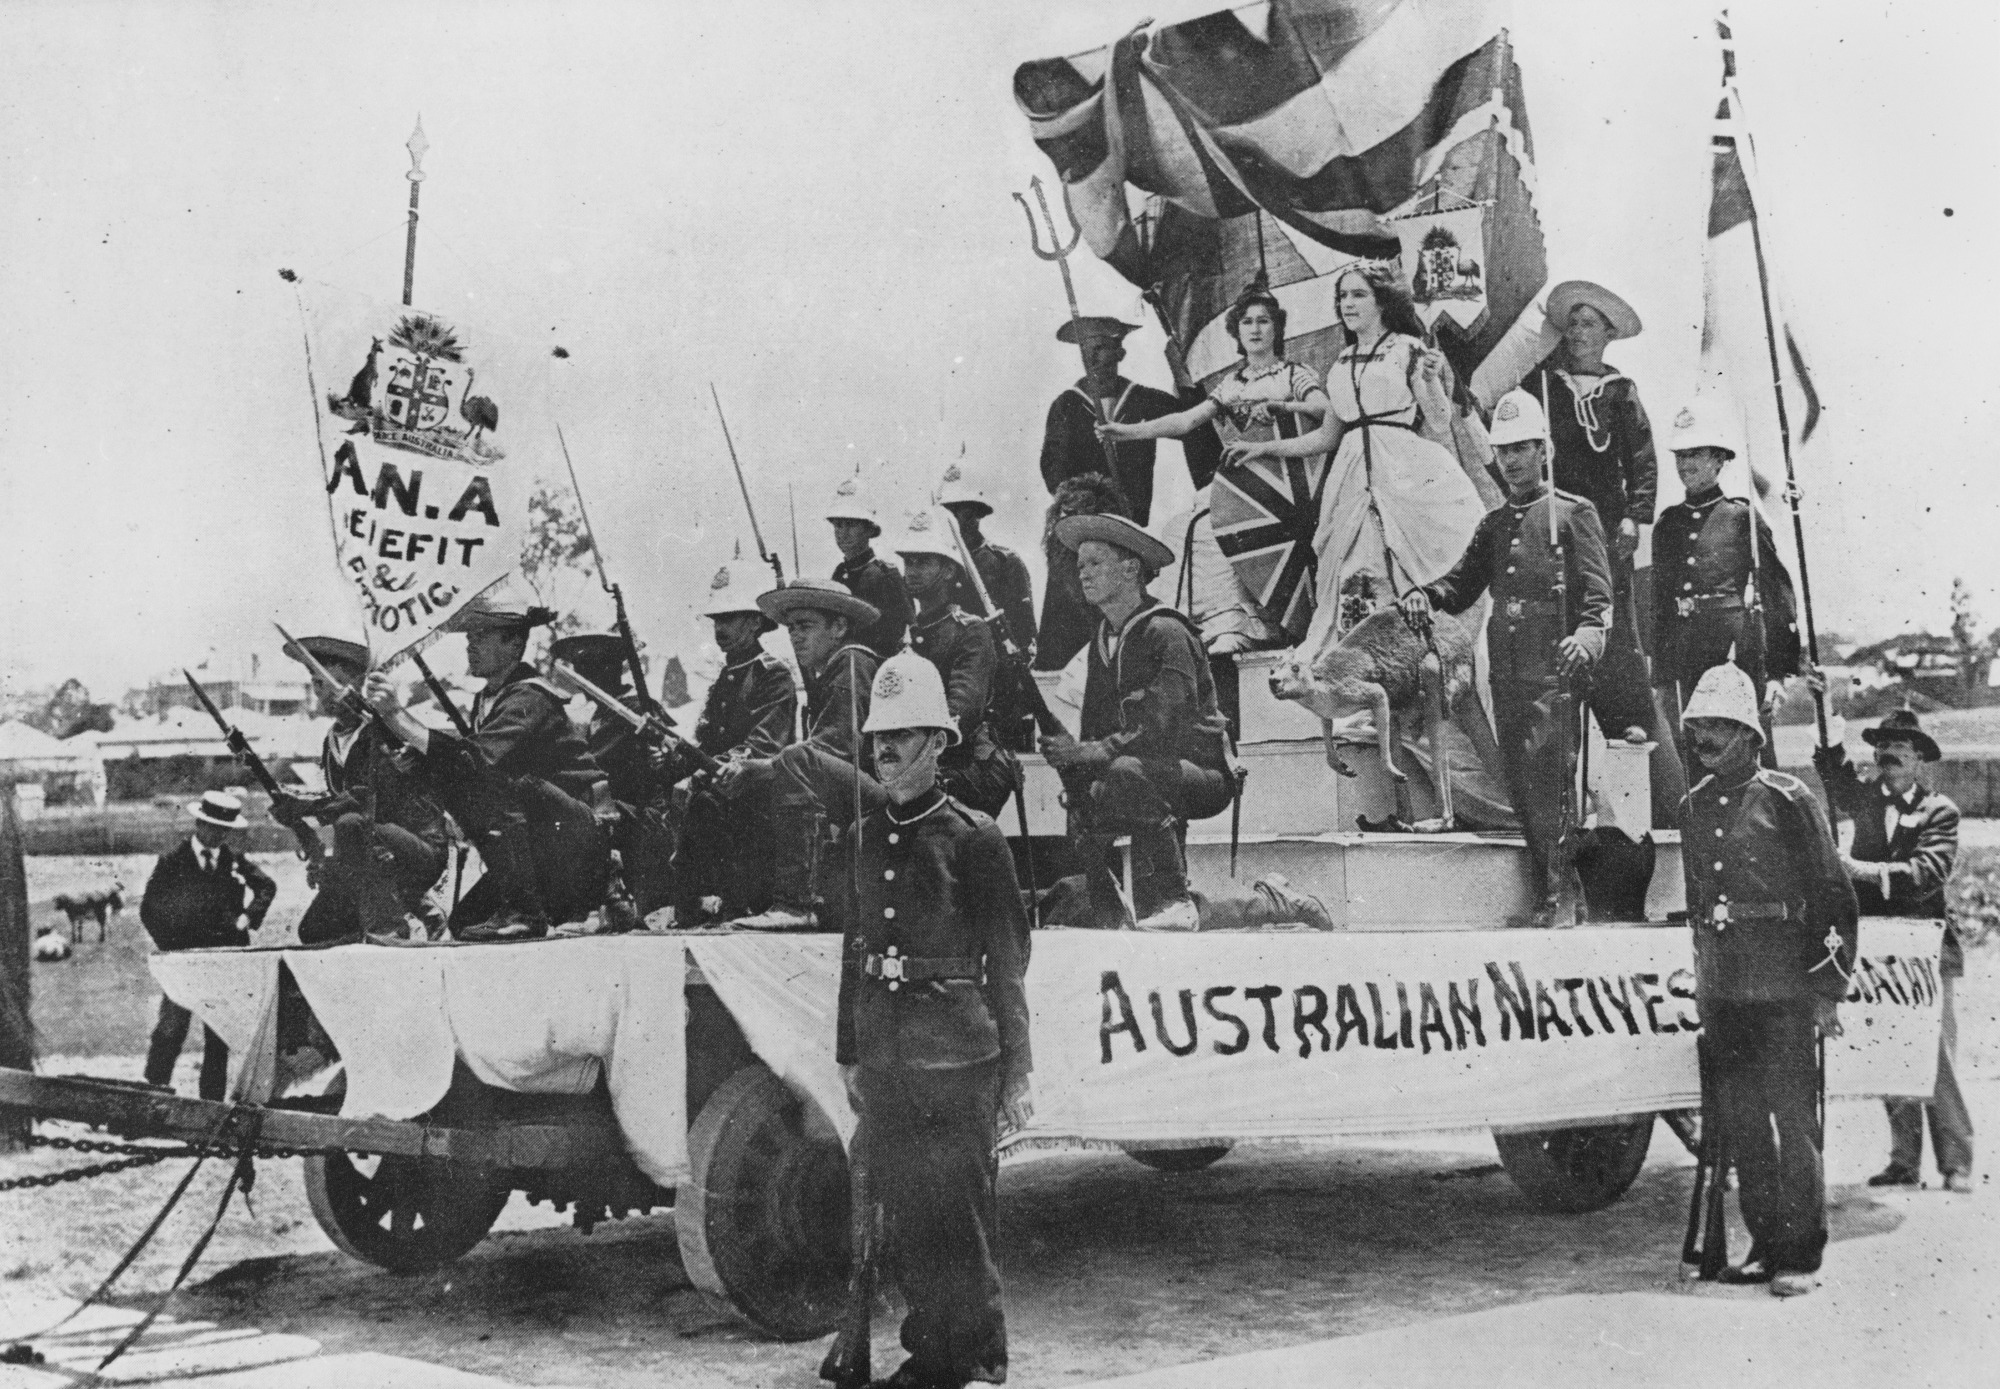 Australian Natives' Association float participating in Australian Commonwealth celebrations, Brisbane, 1901.